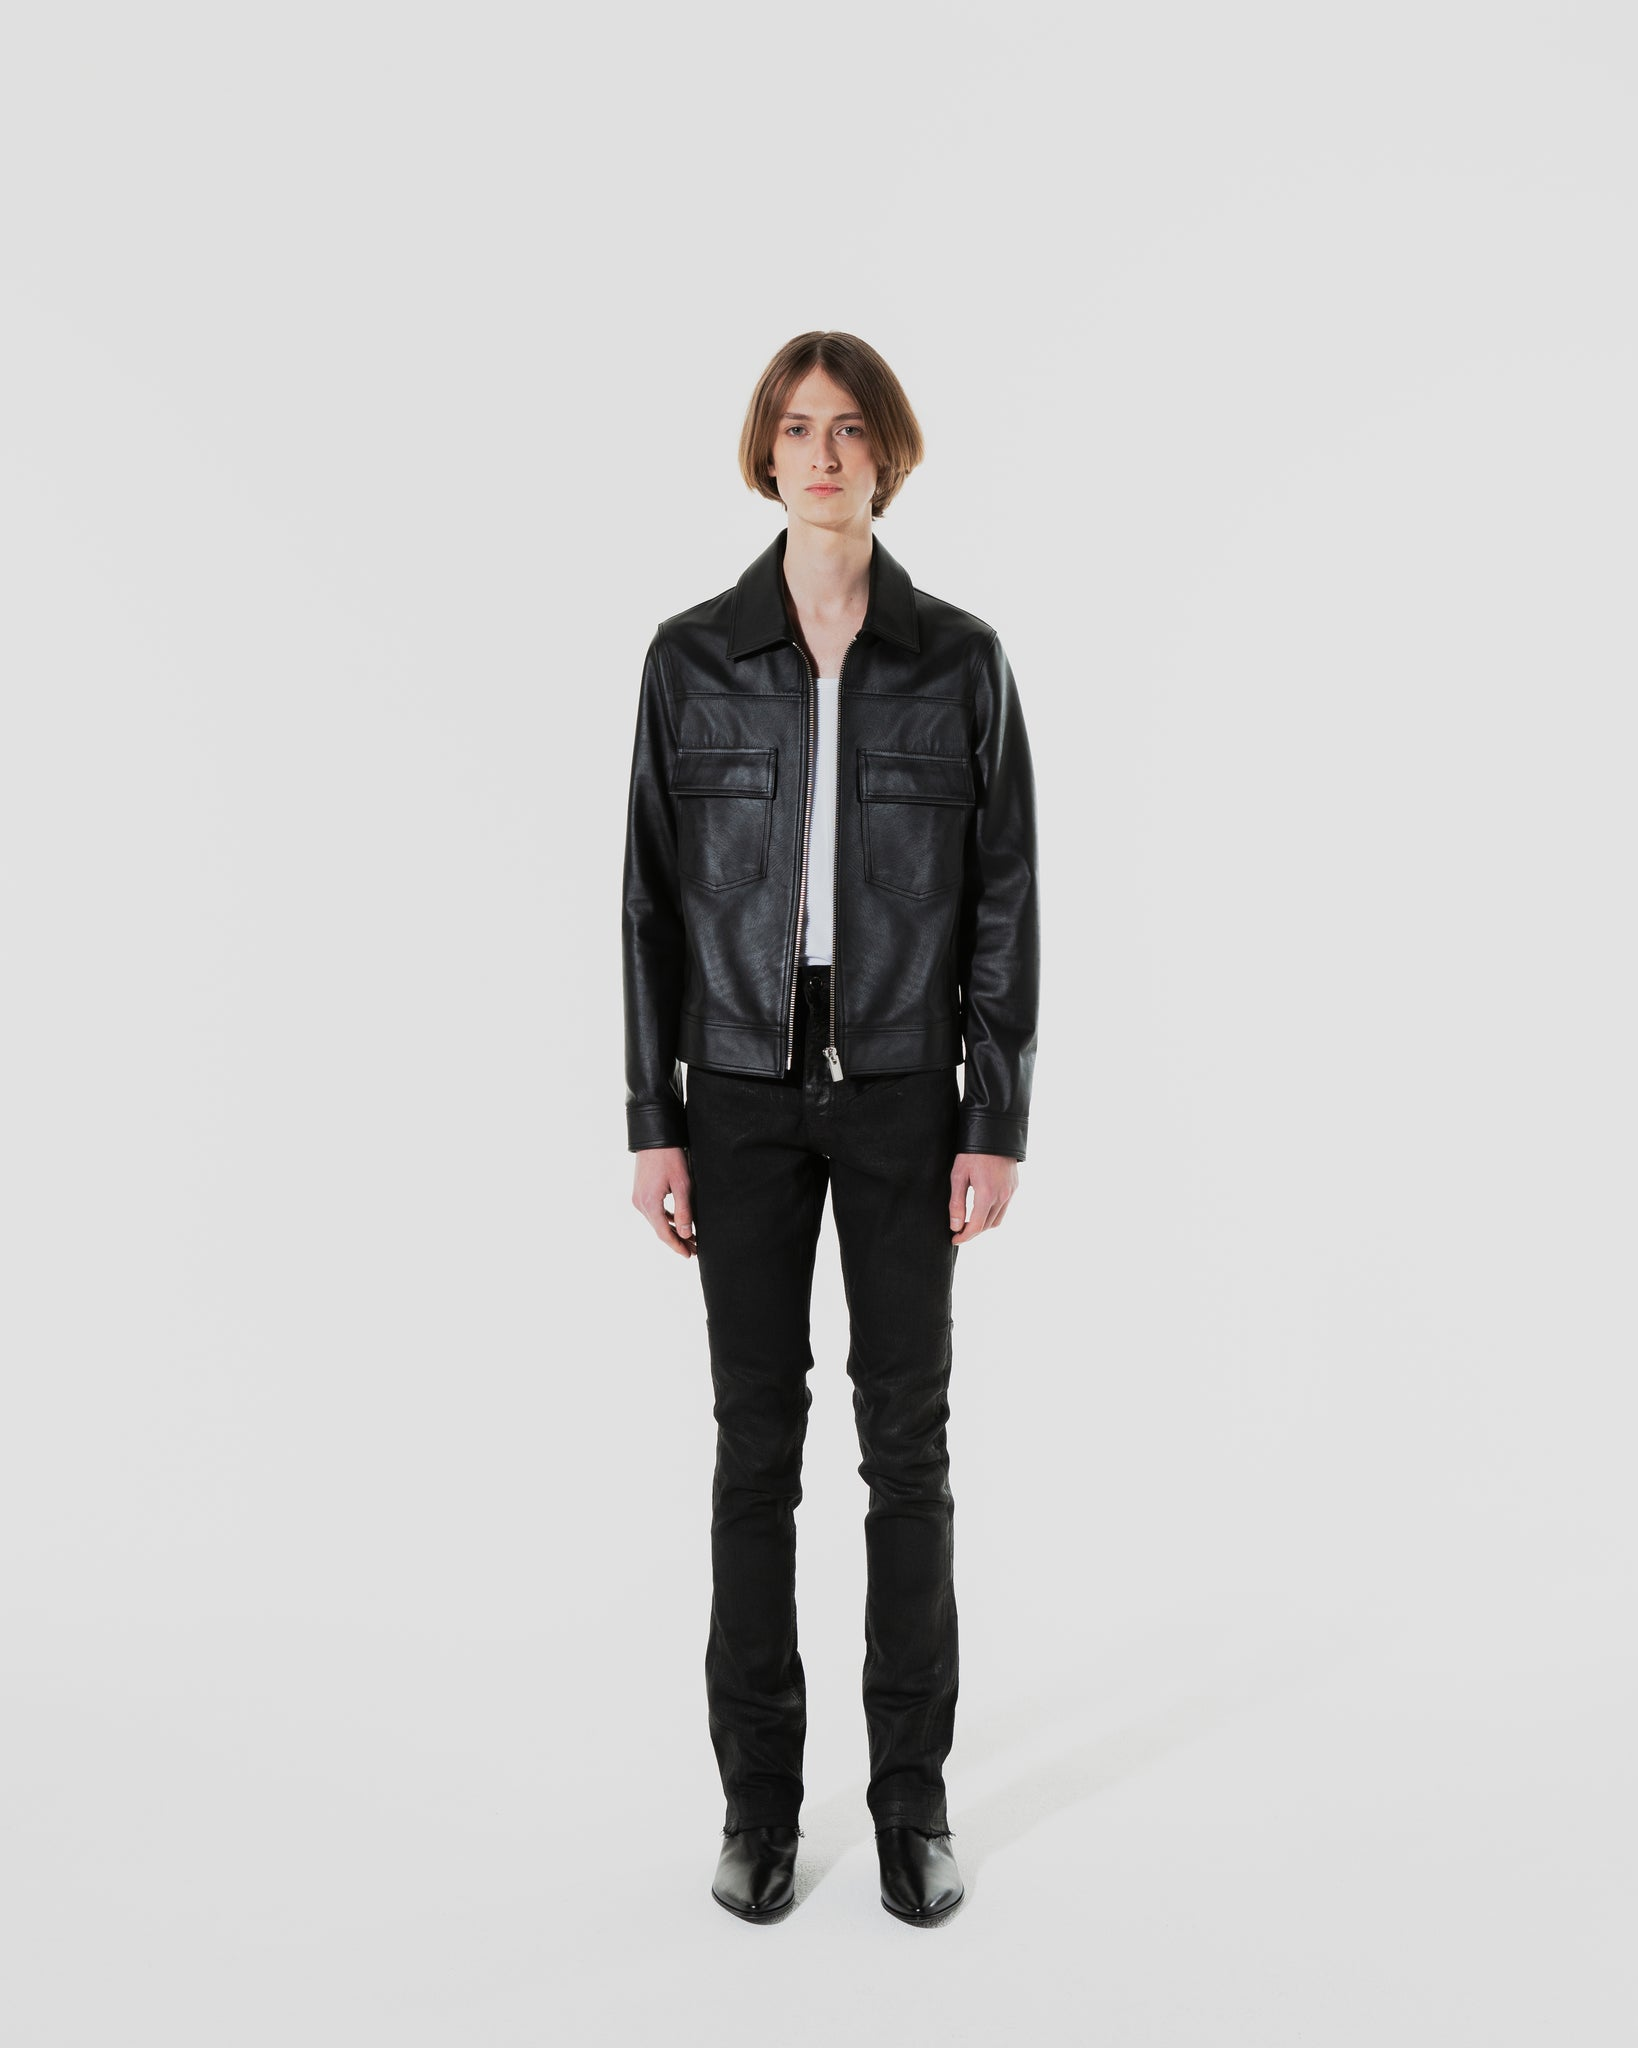 AW21 HEROIN CHIC LOOK 31